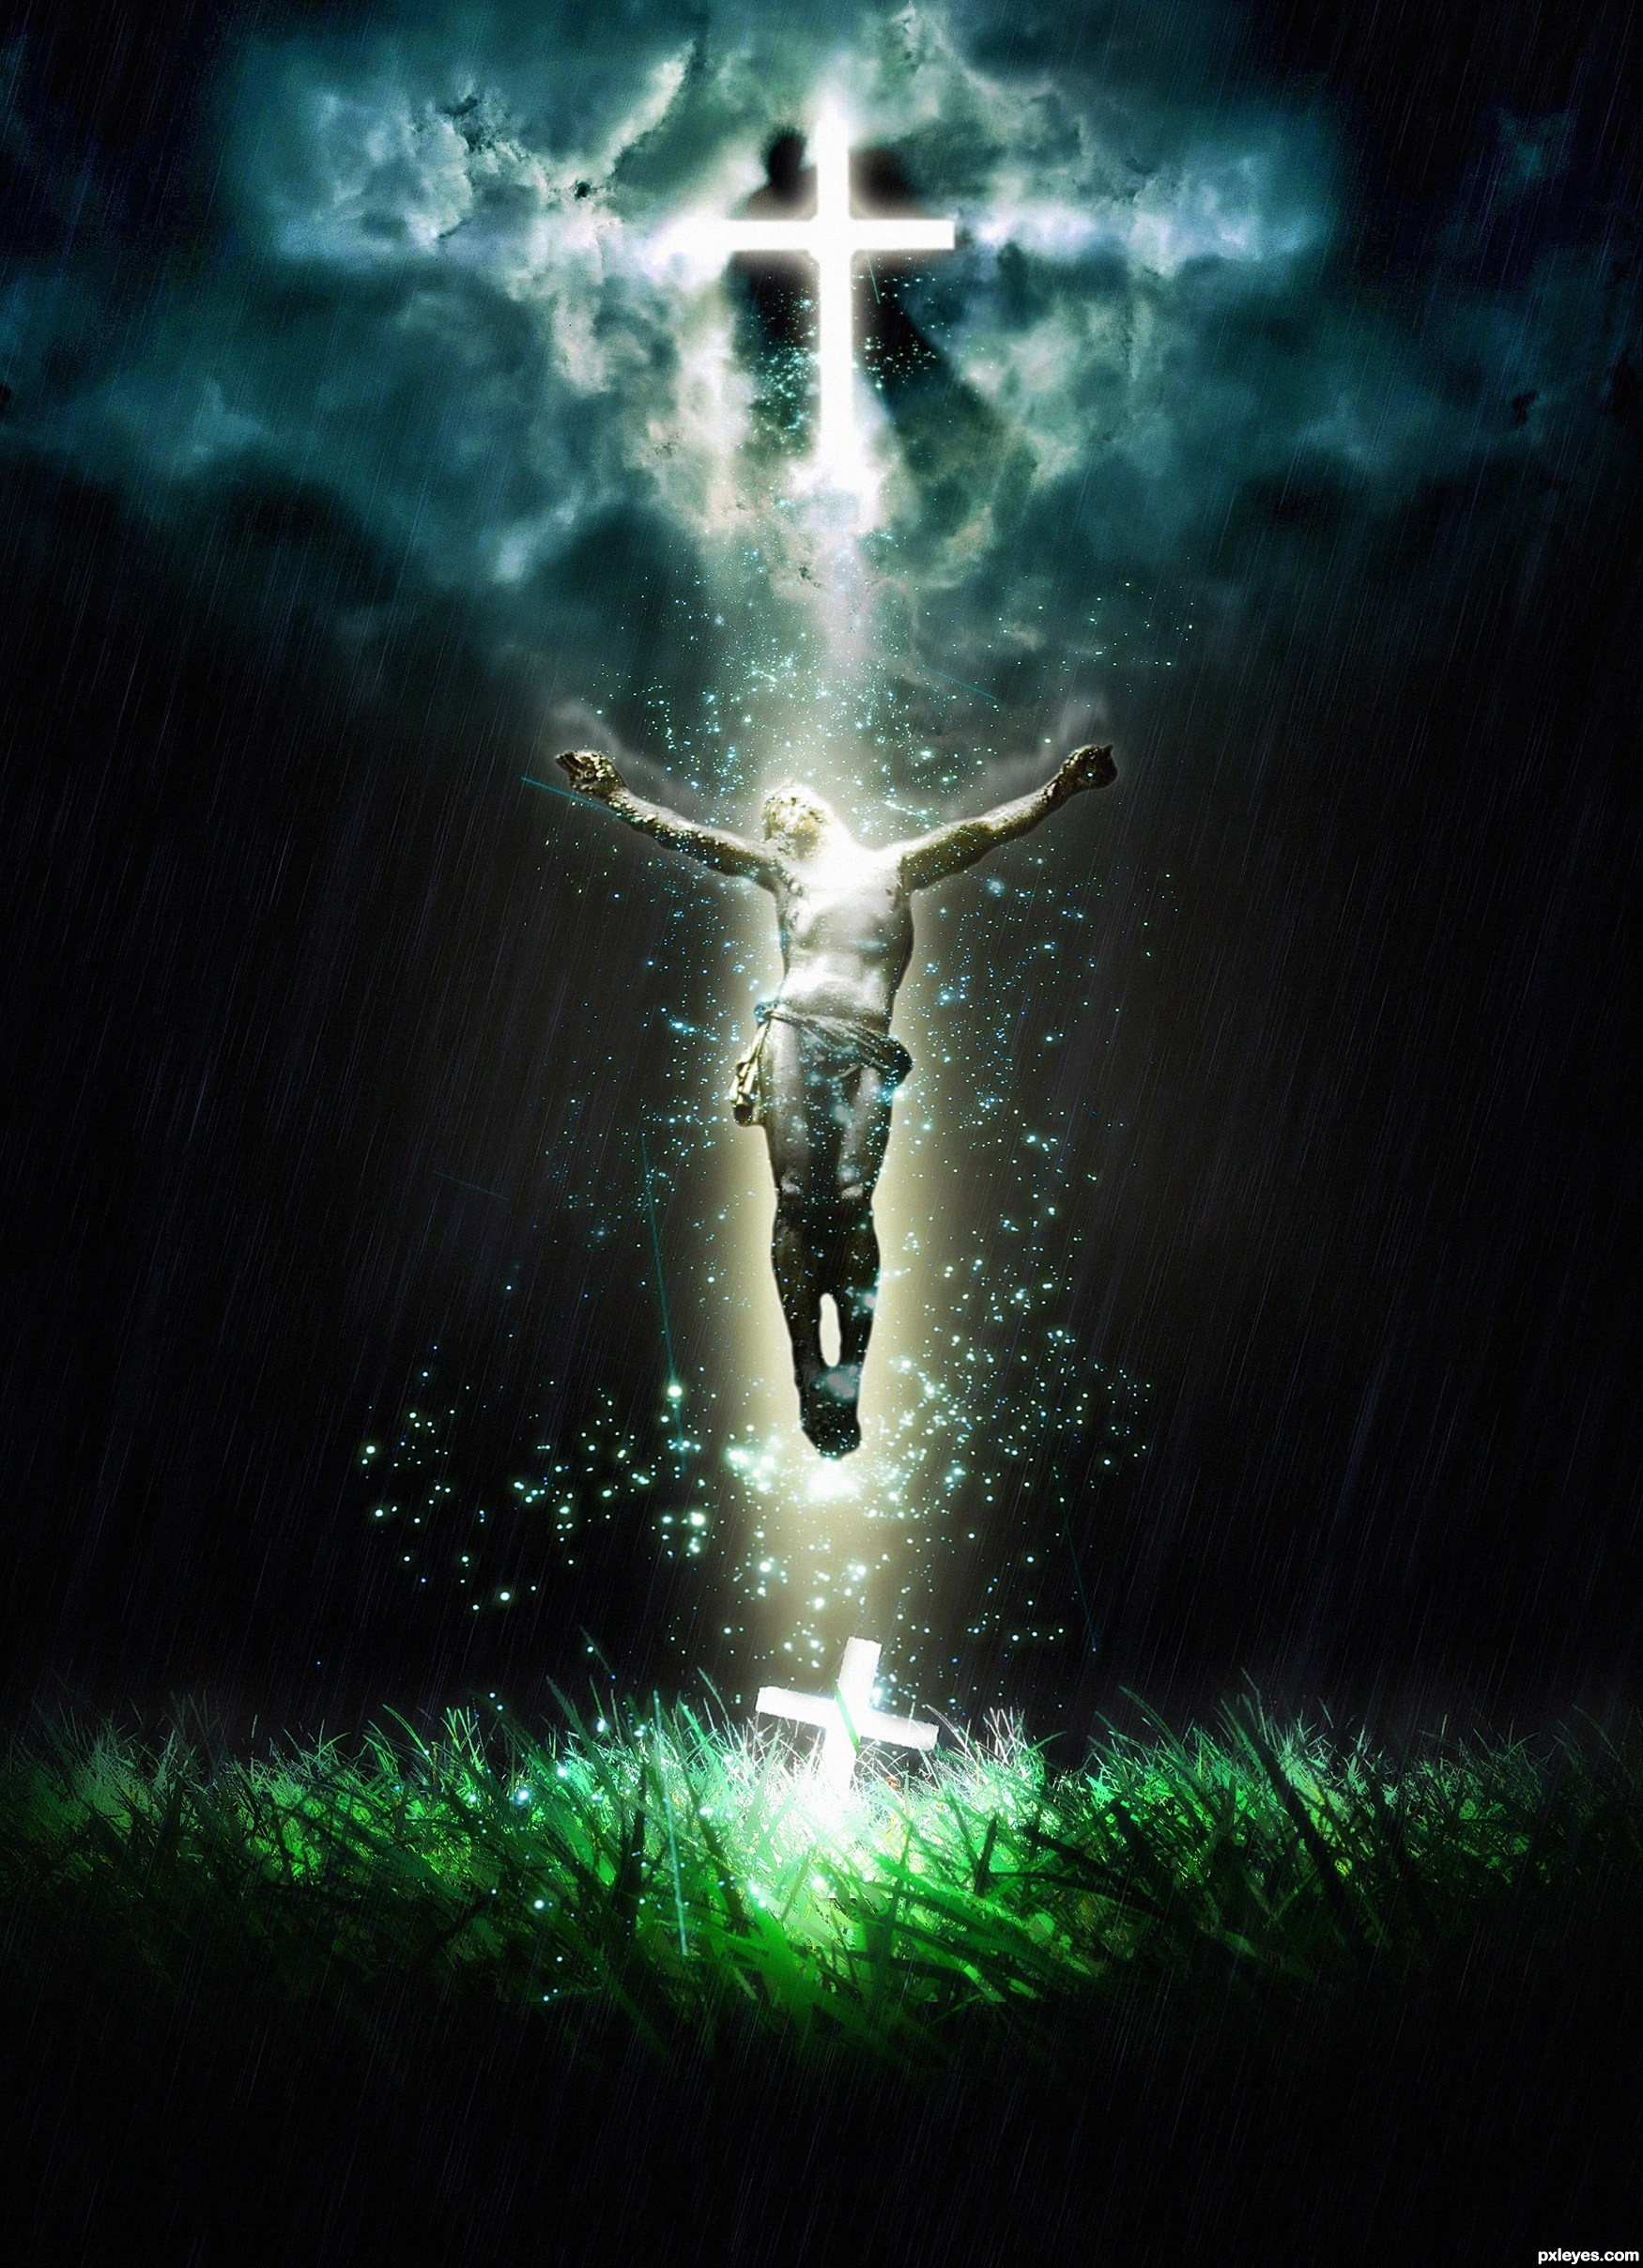 The RESURRECTION picture for: crosses photoshop contest - Pxleyes.com